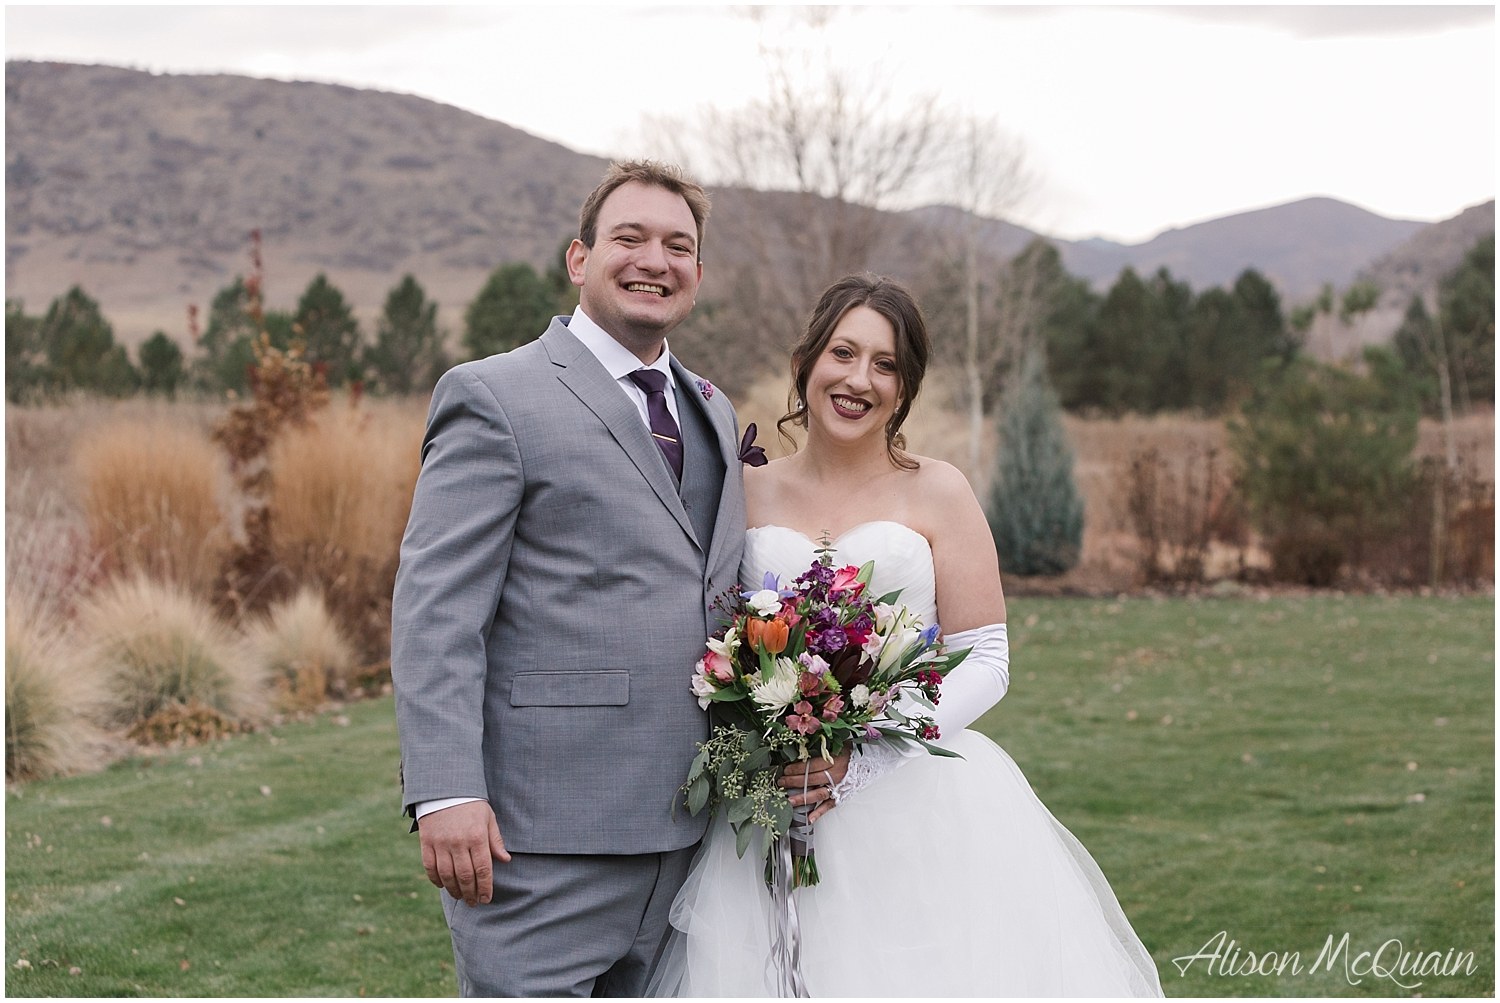 Zako_Wedding_ChatfieldFarm_Denver_Fall_2018_AlisonMcQuainPhotography_0001.jpg